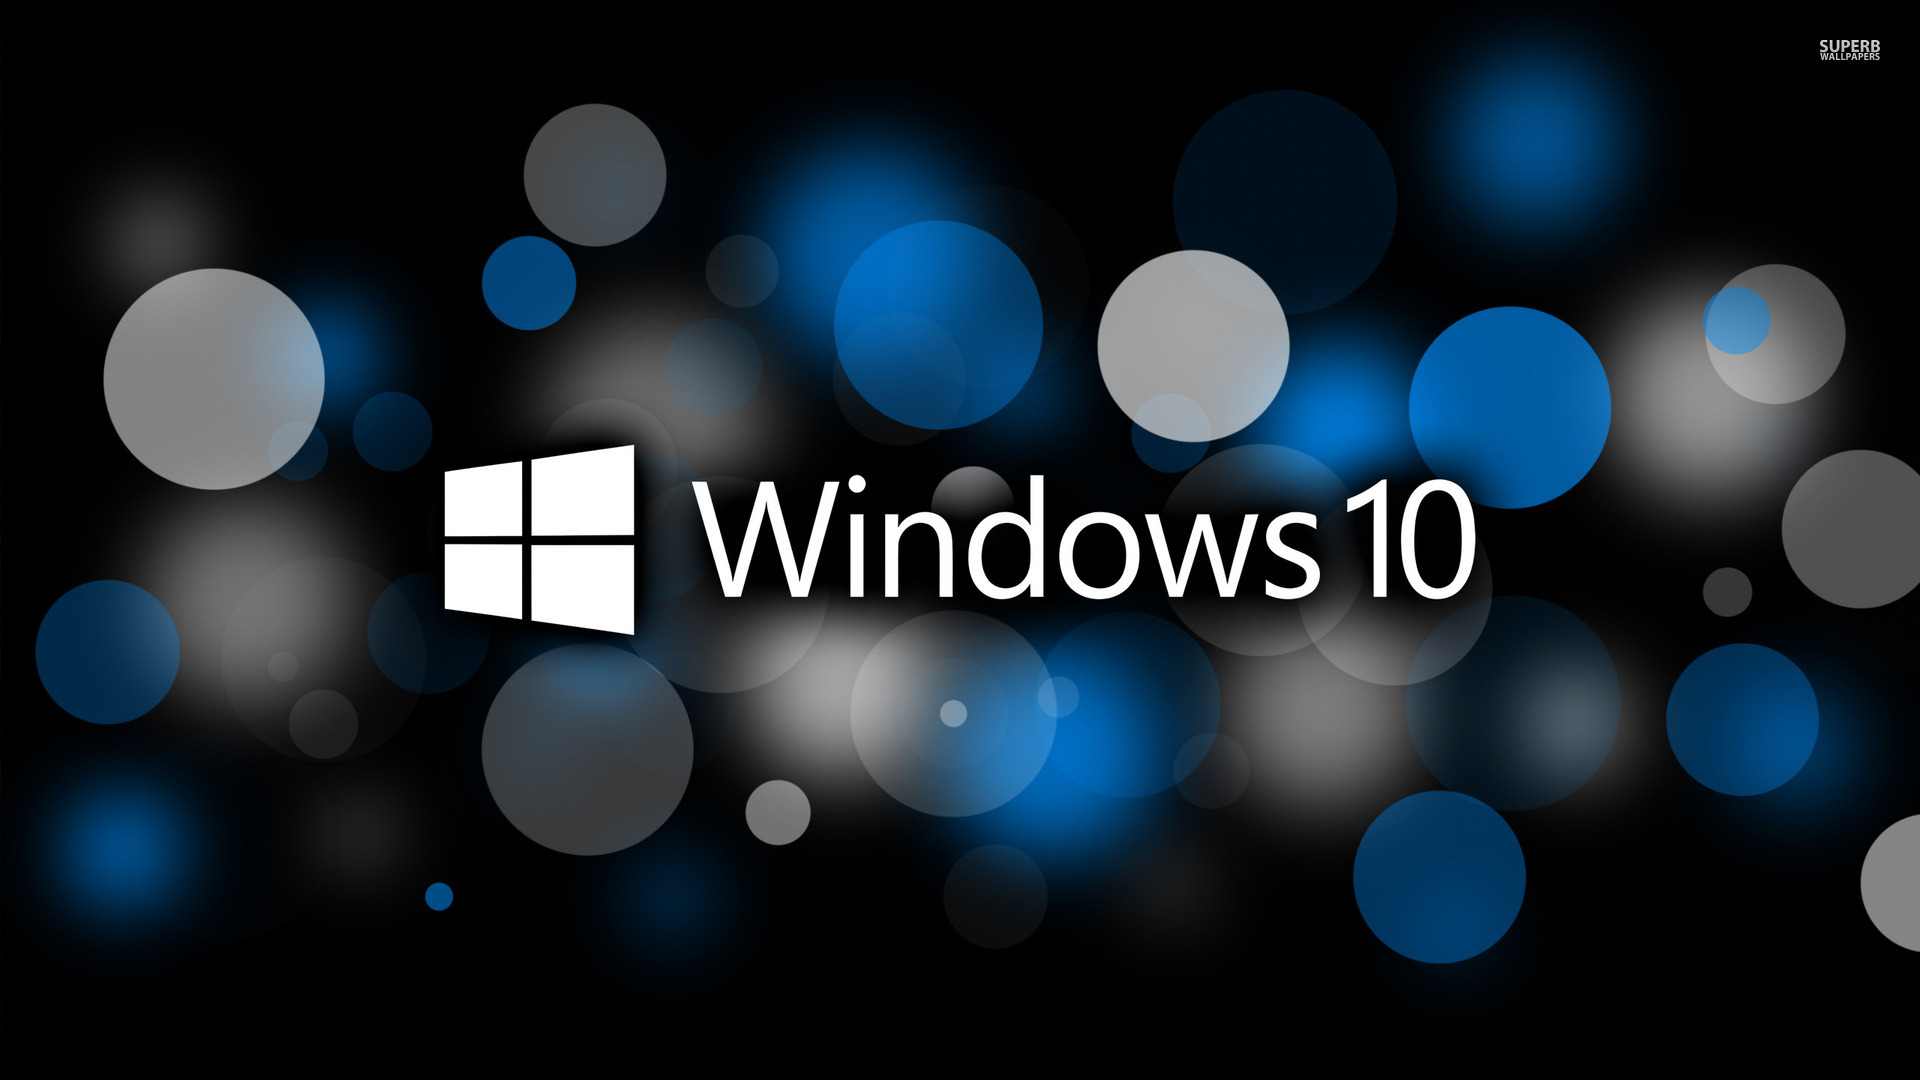 How to fix screen flashing issue windows 10 full tutorial with microsoft greatest creation which is used my millions of people around the world is windows the latest release windows 10 and its version are right now baditri Choice Image